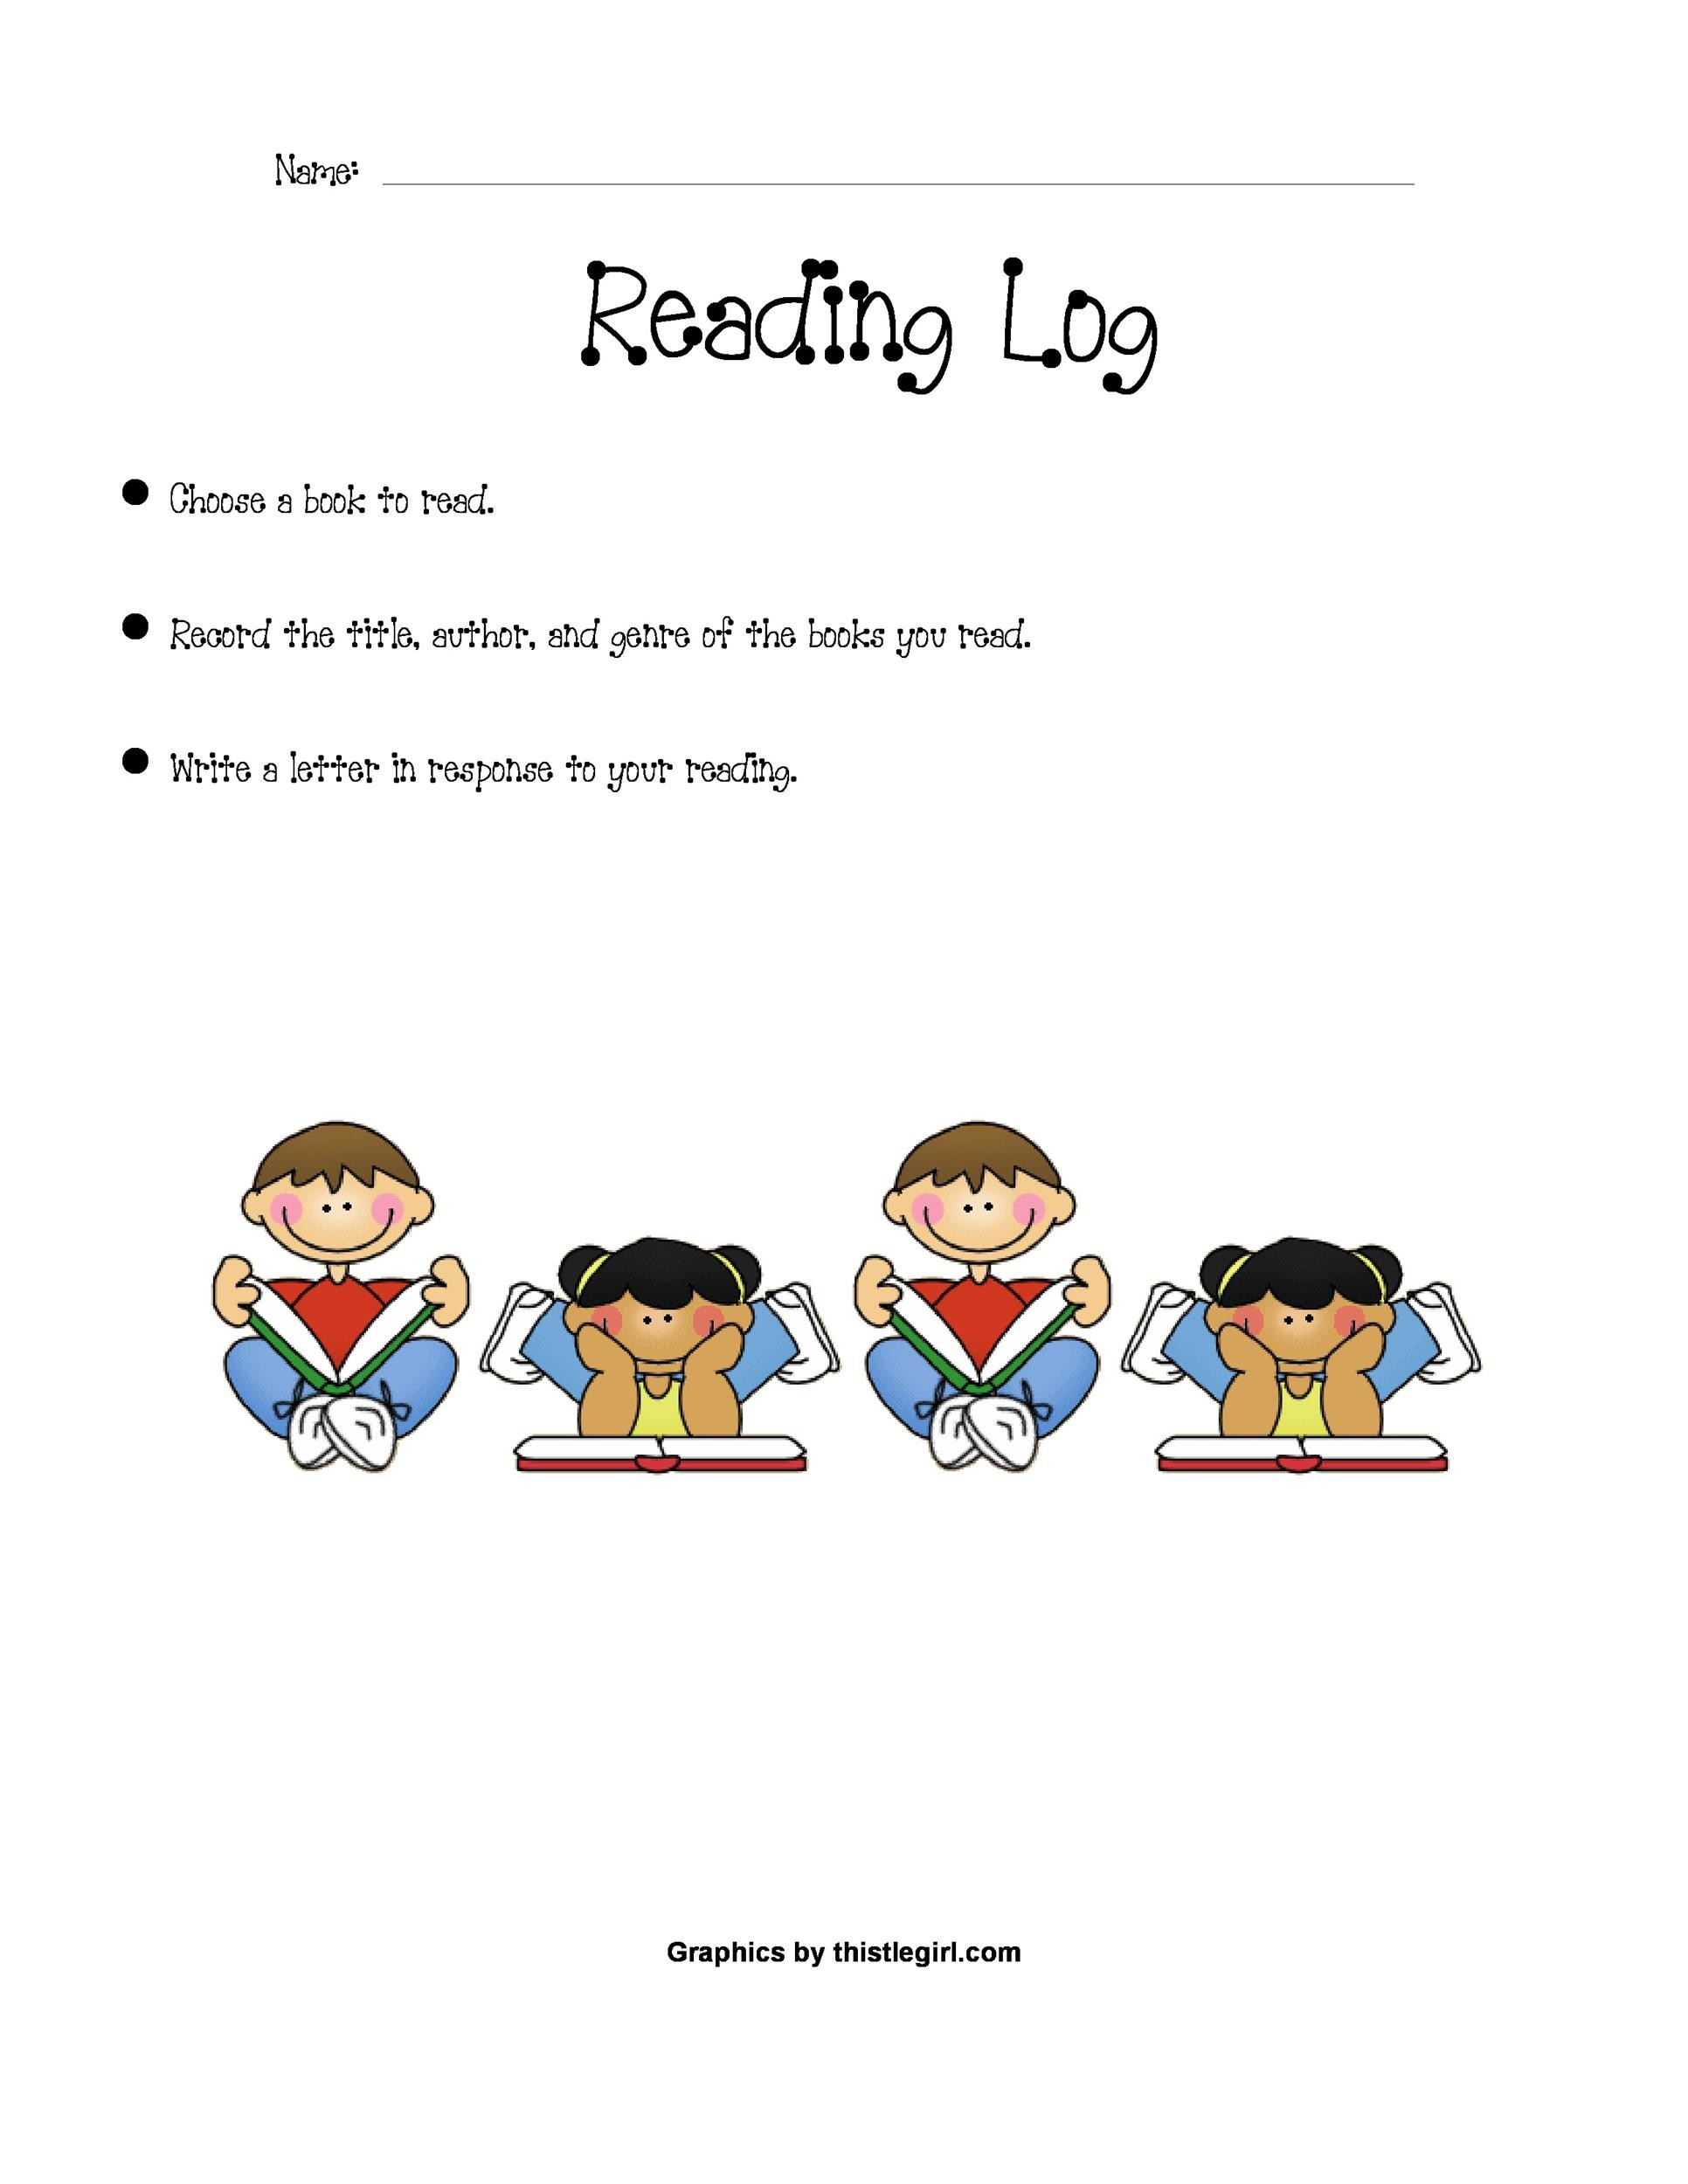 photo regarding Free Printable Reading Logs titled 47 Printable Looking through Log Templates for Young children, Heart Faculty